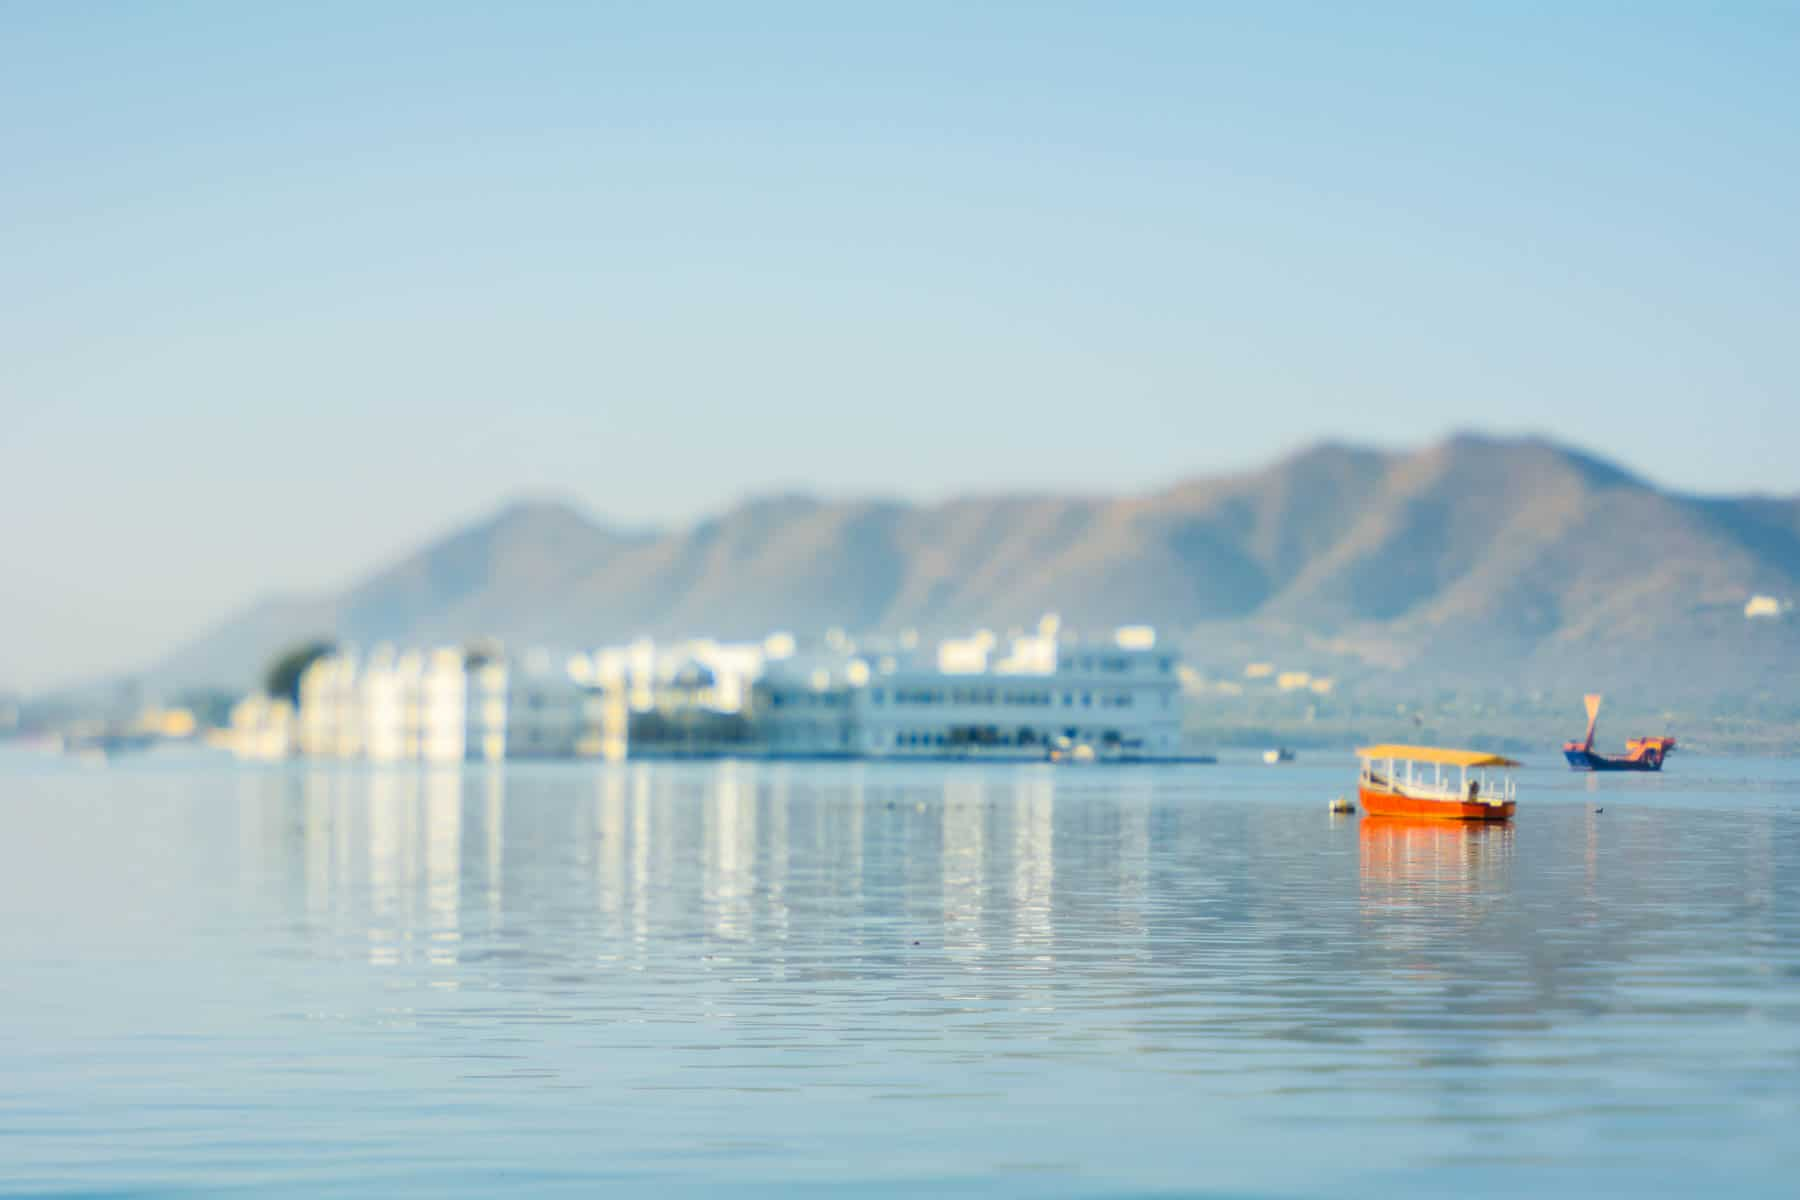 Lensbaby Edge 50 Optic review - Unfocused shot of a boat on a lake in Udaipur, India with the Lensbaby Edge 50 Optic - Lost With Purpose